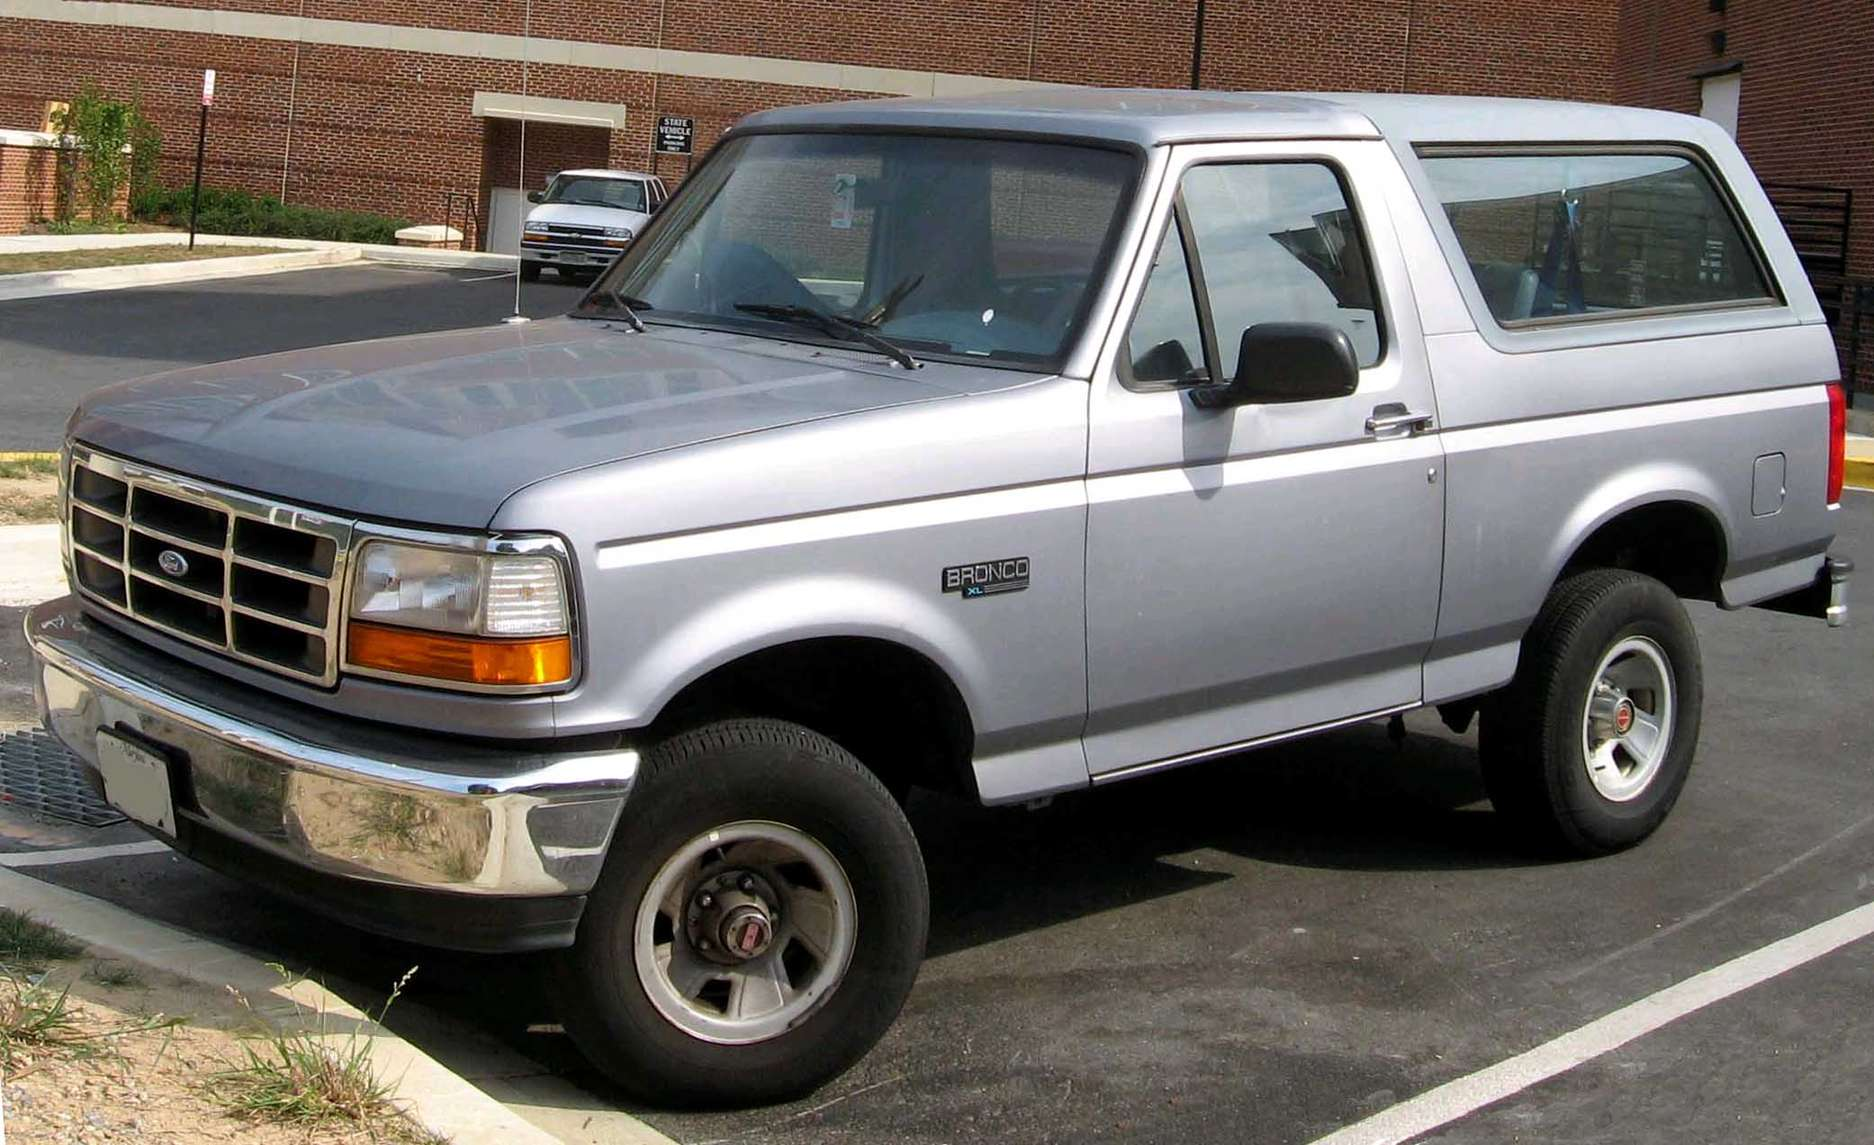 Ford Bronco #9568912